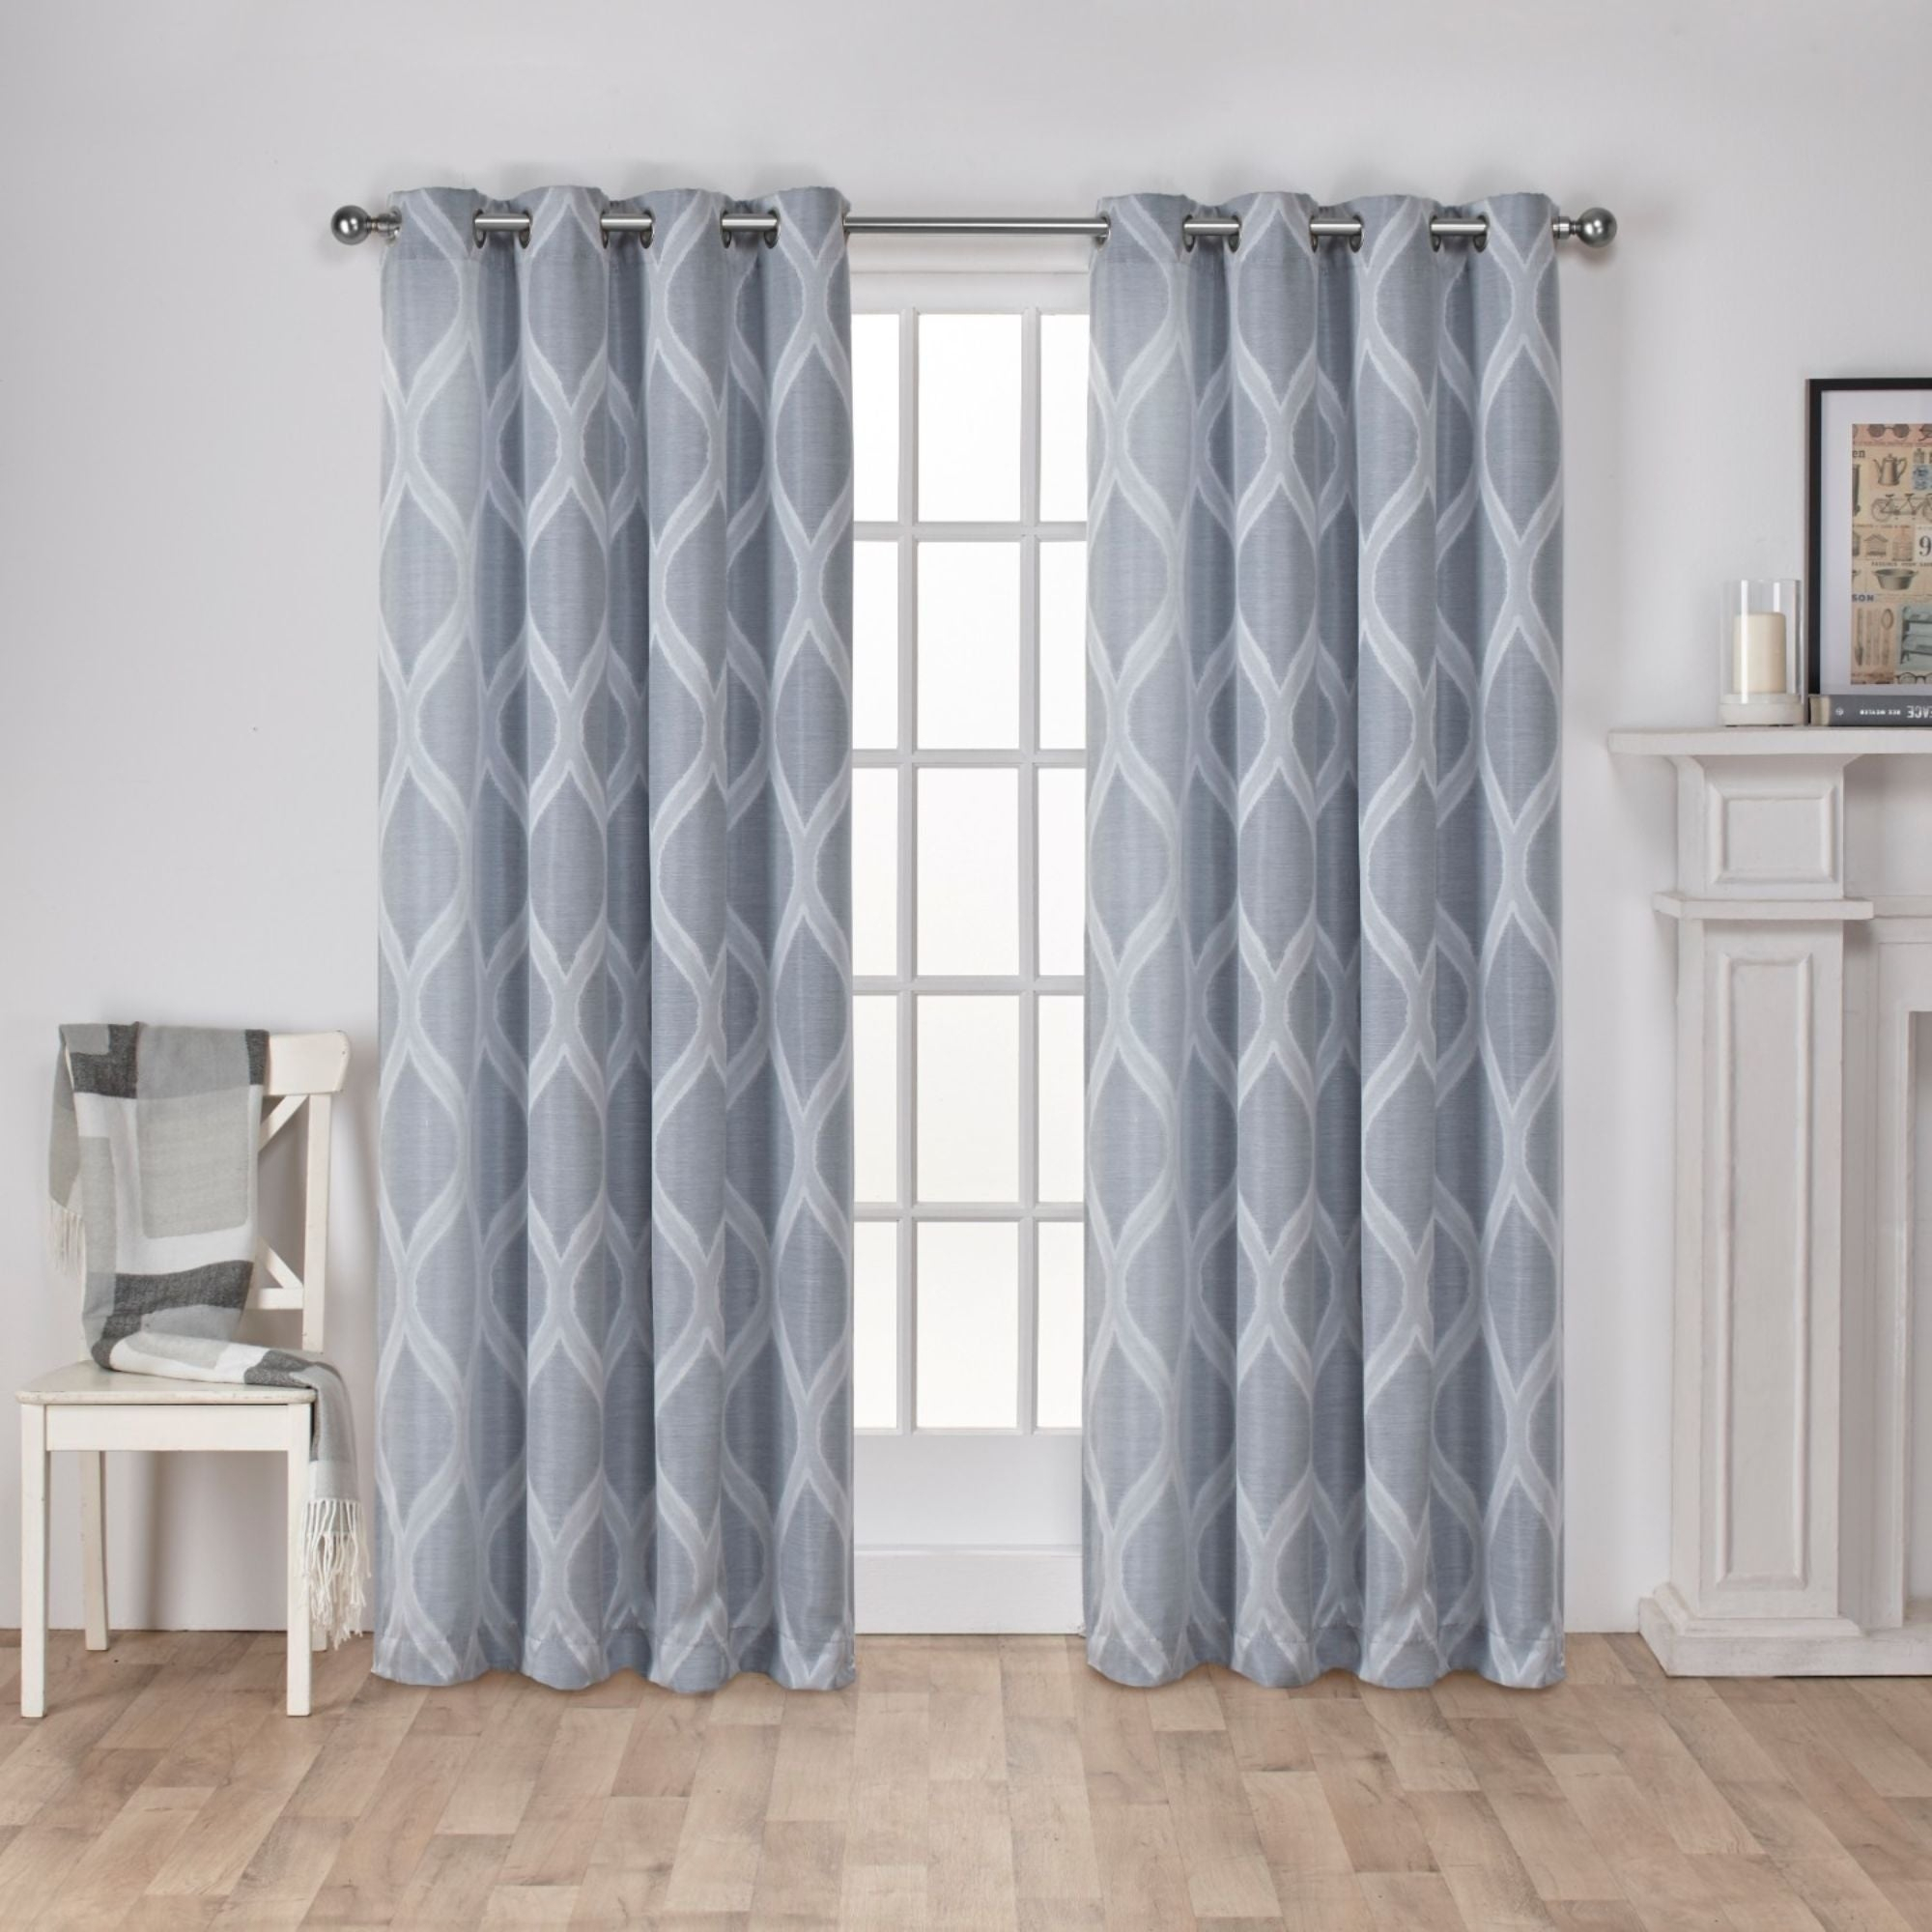 The Curated Nomad Carlton Jacquard Grommet Top Curtain Panel Pair With The Curated Nomad Duane Jacquard Grommet Top Curtain Panel Pairs (View 24 of 30)